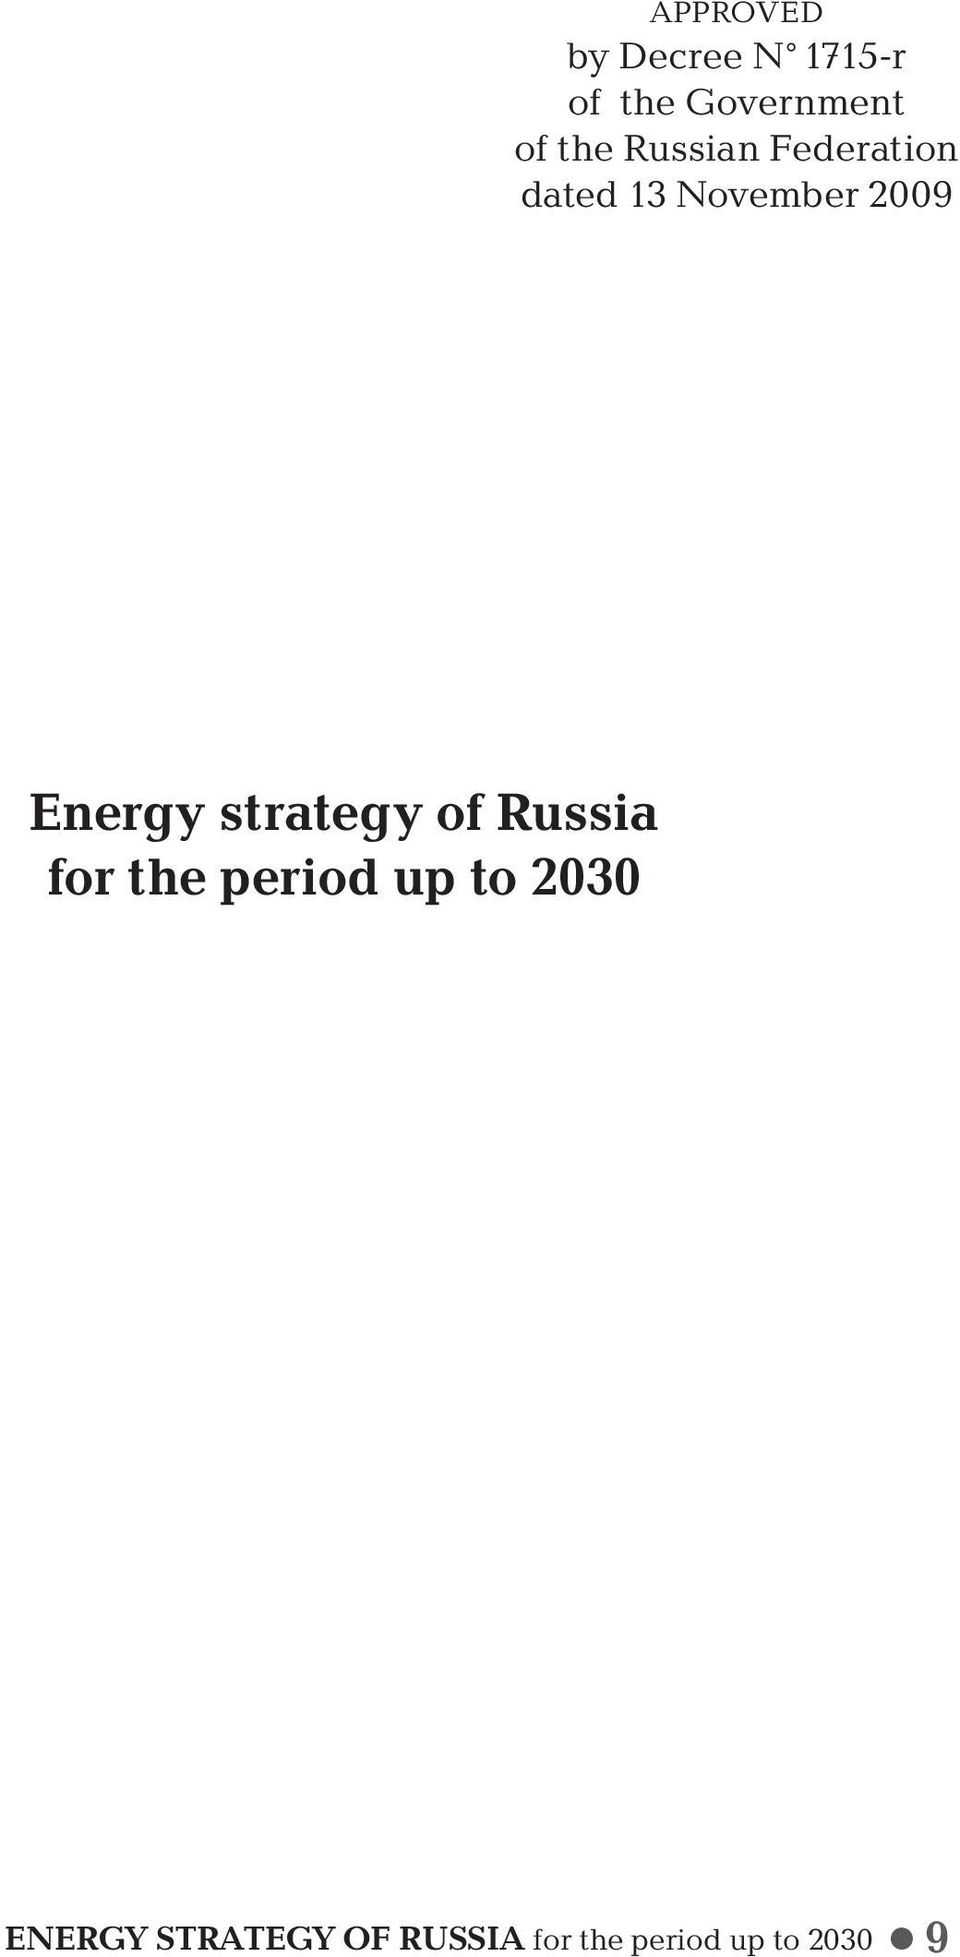 Energy strategy of Russia for the period up to